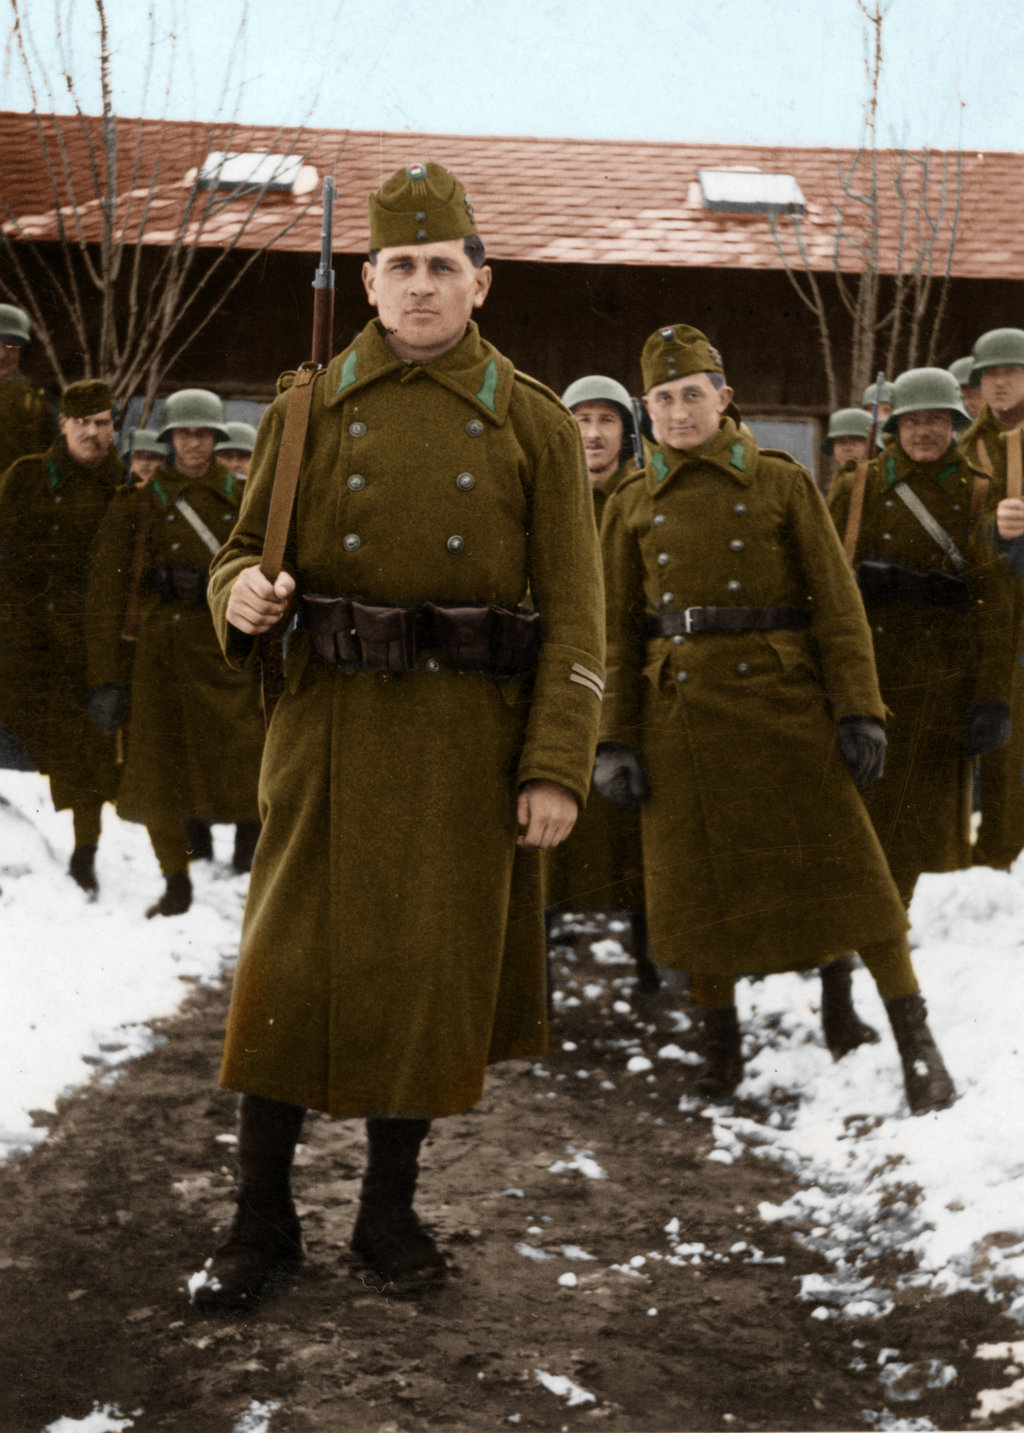 soldiers_in_winter__by_greenh0rn-d7icrg3.jpg